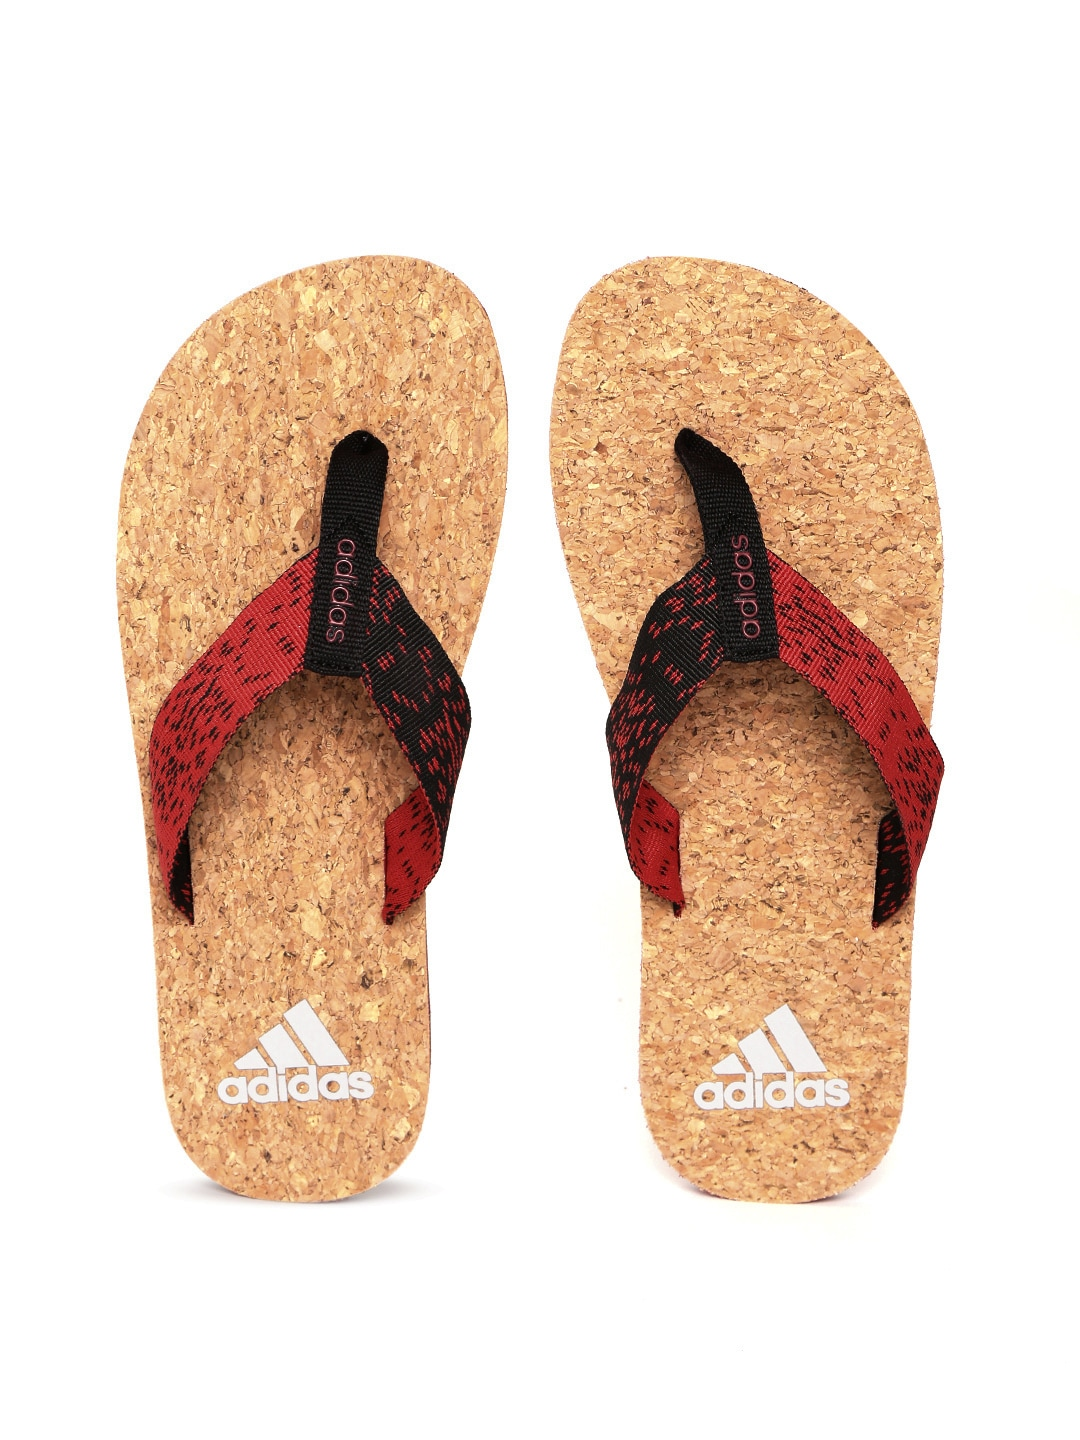 7996289f42201 Adidas Red   Black Beach Cork 2017 Flip Flops for Men online in ...